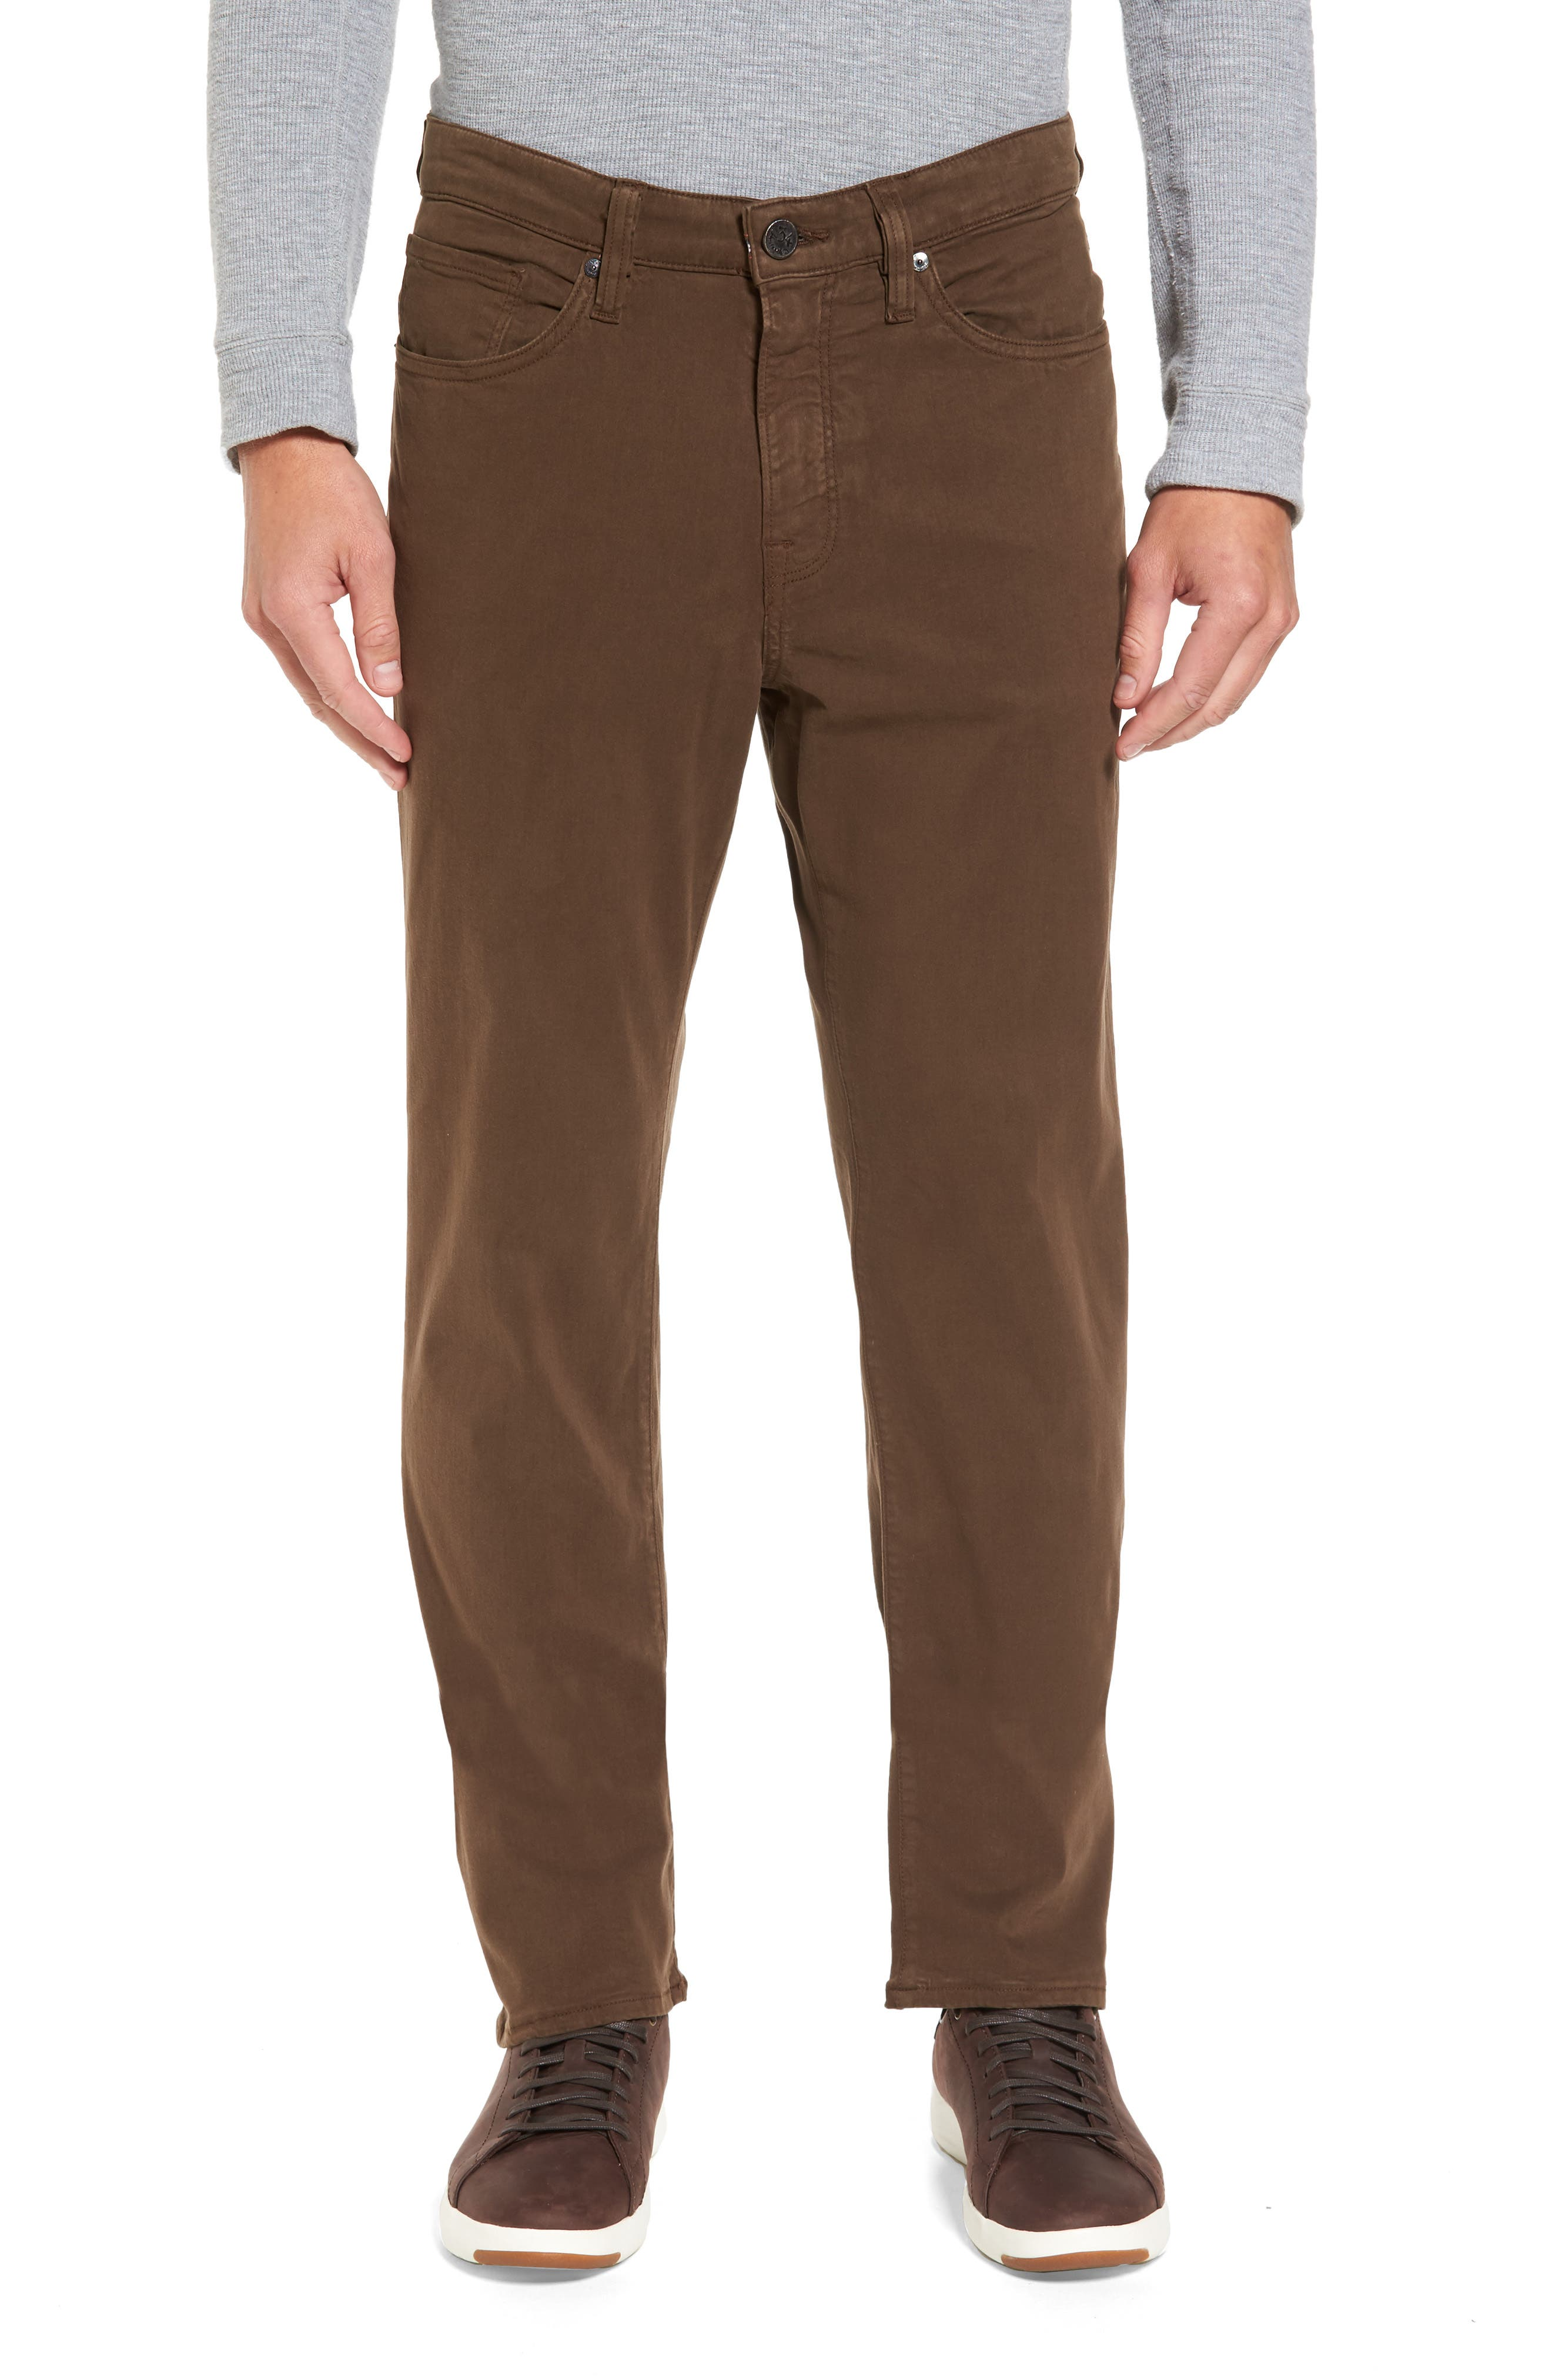 Alternate Image 1 Selected - 34 Heritage Charism Relaxed Fit Jeans (Choco Twill)